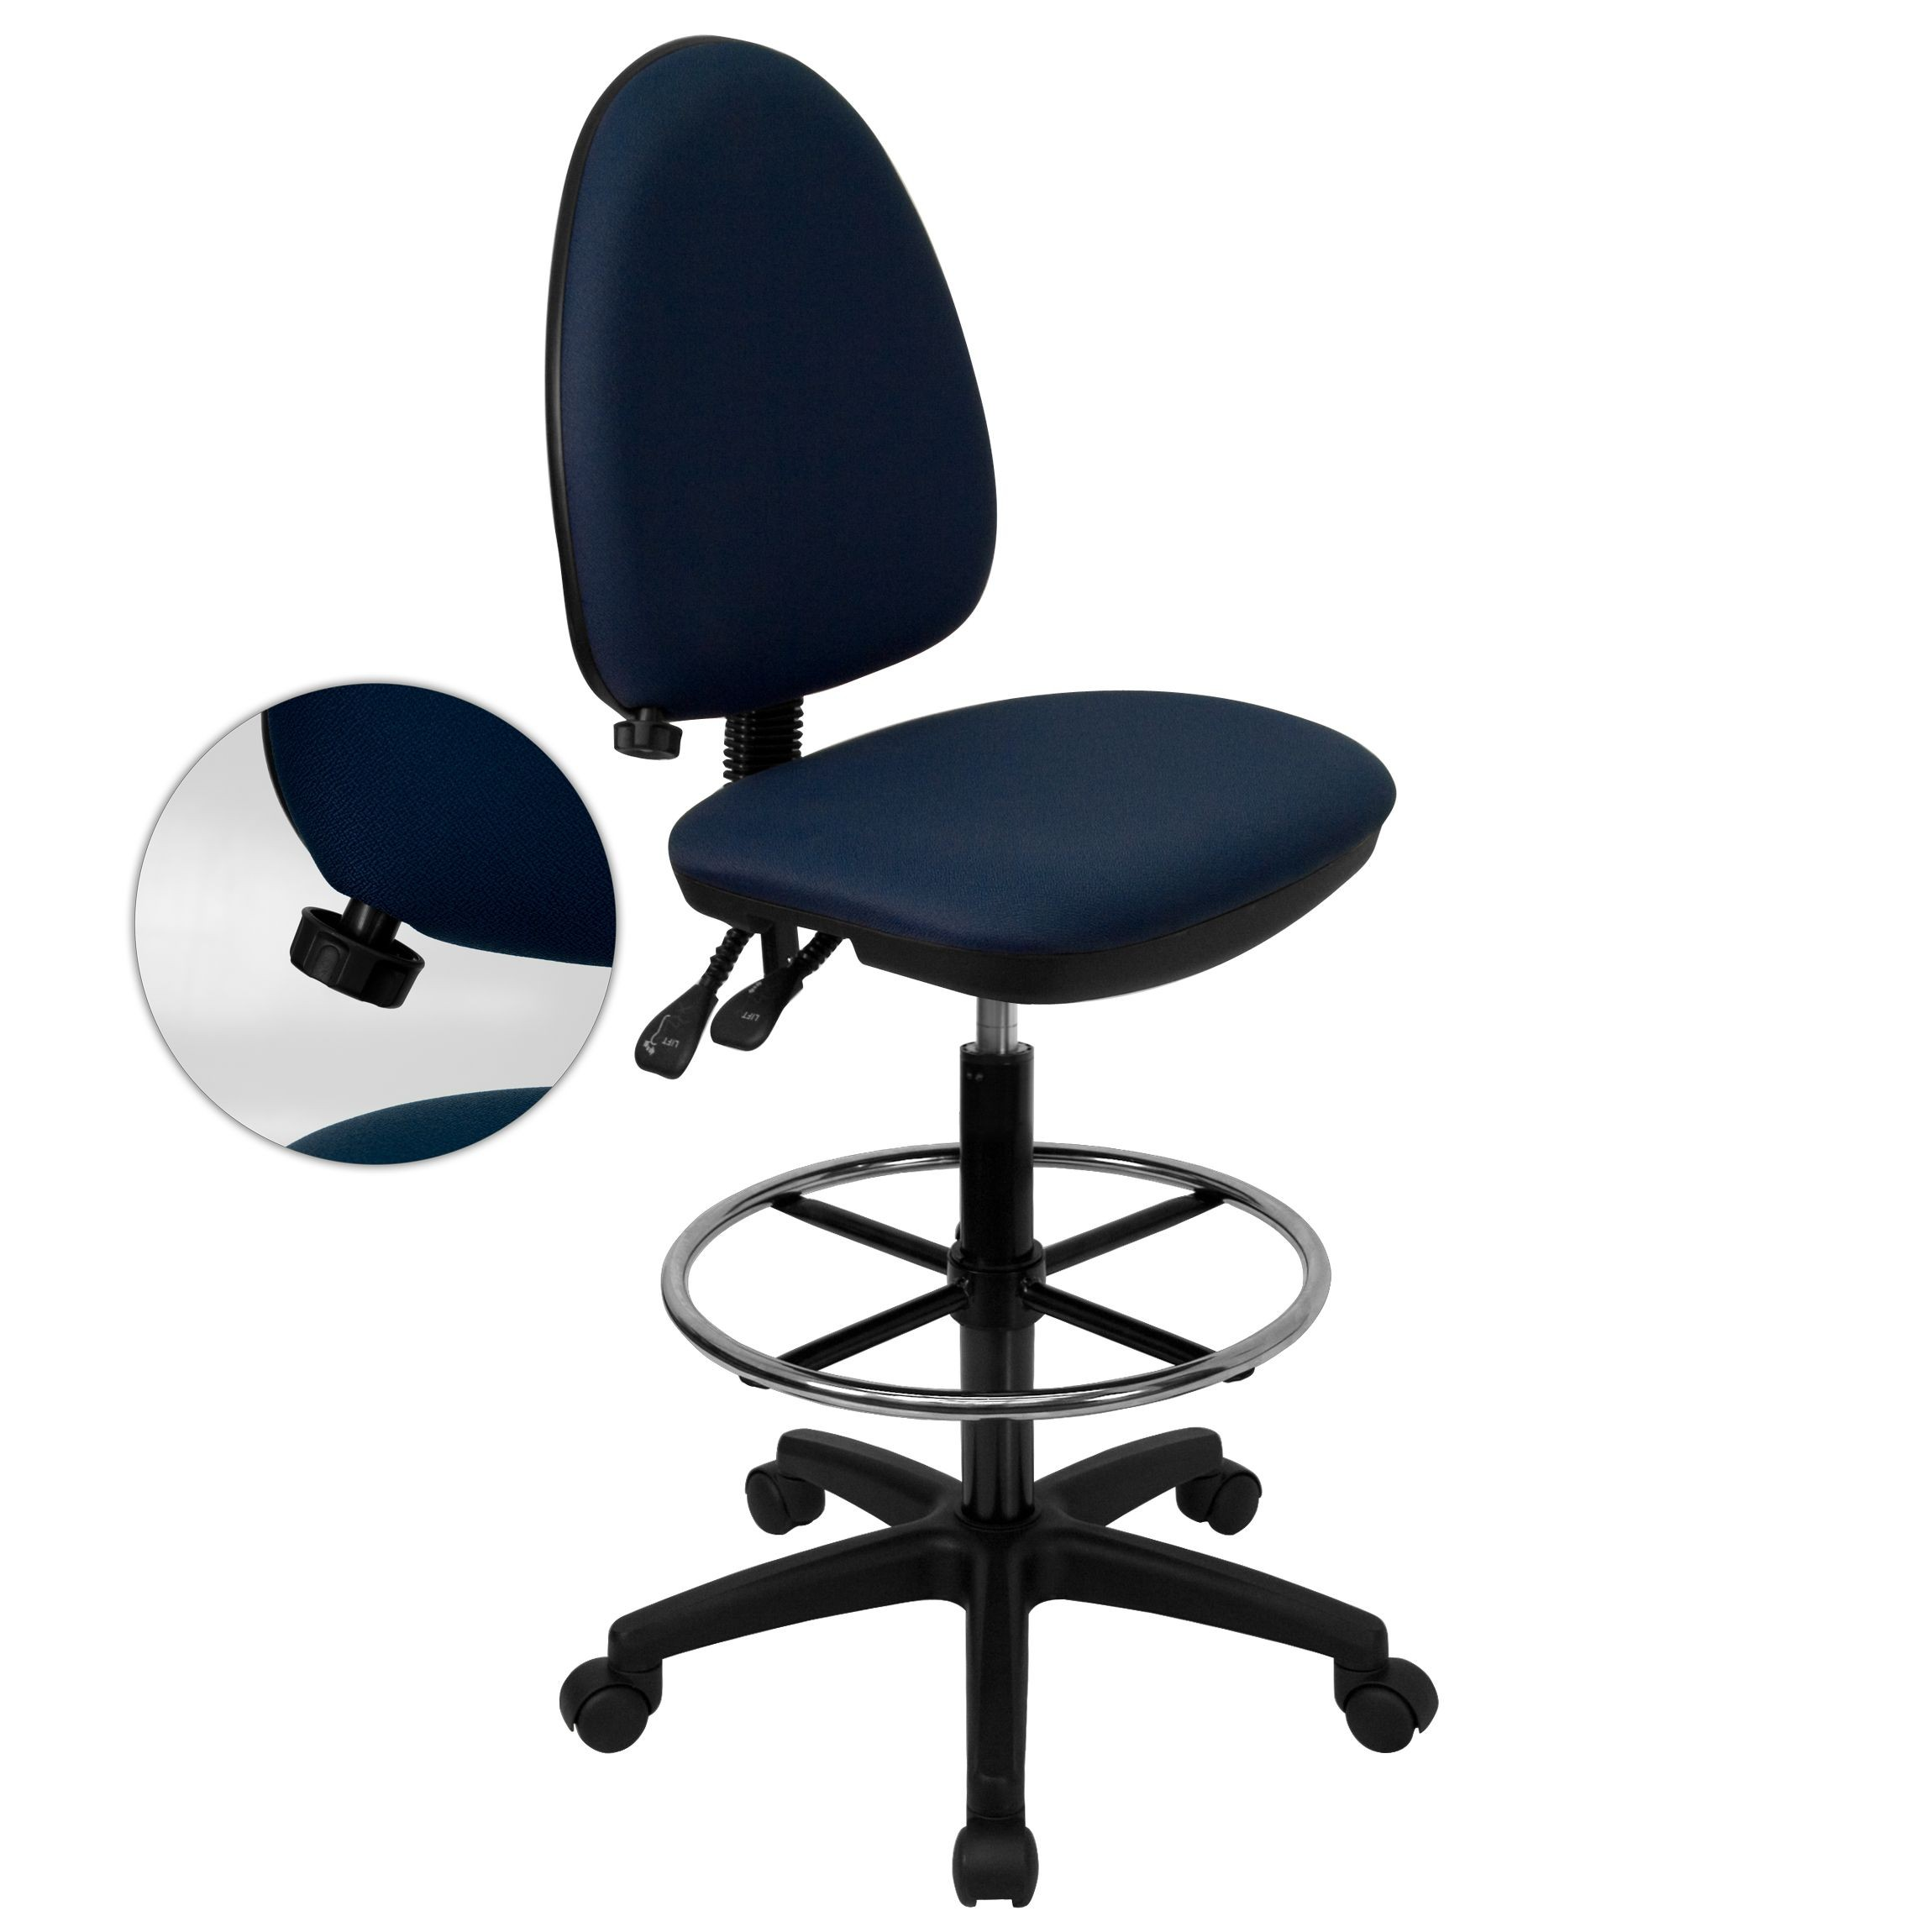 Flash Furniture WL-A654MG-NVY-D-GG Mid-Back Navy Blue Fabric Multi-Functional Drafting Stool with Adjustable Lumbar Support